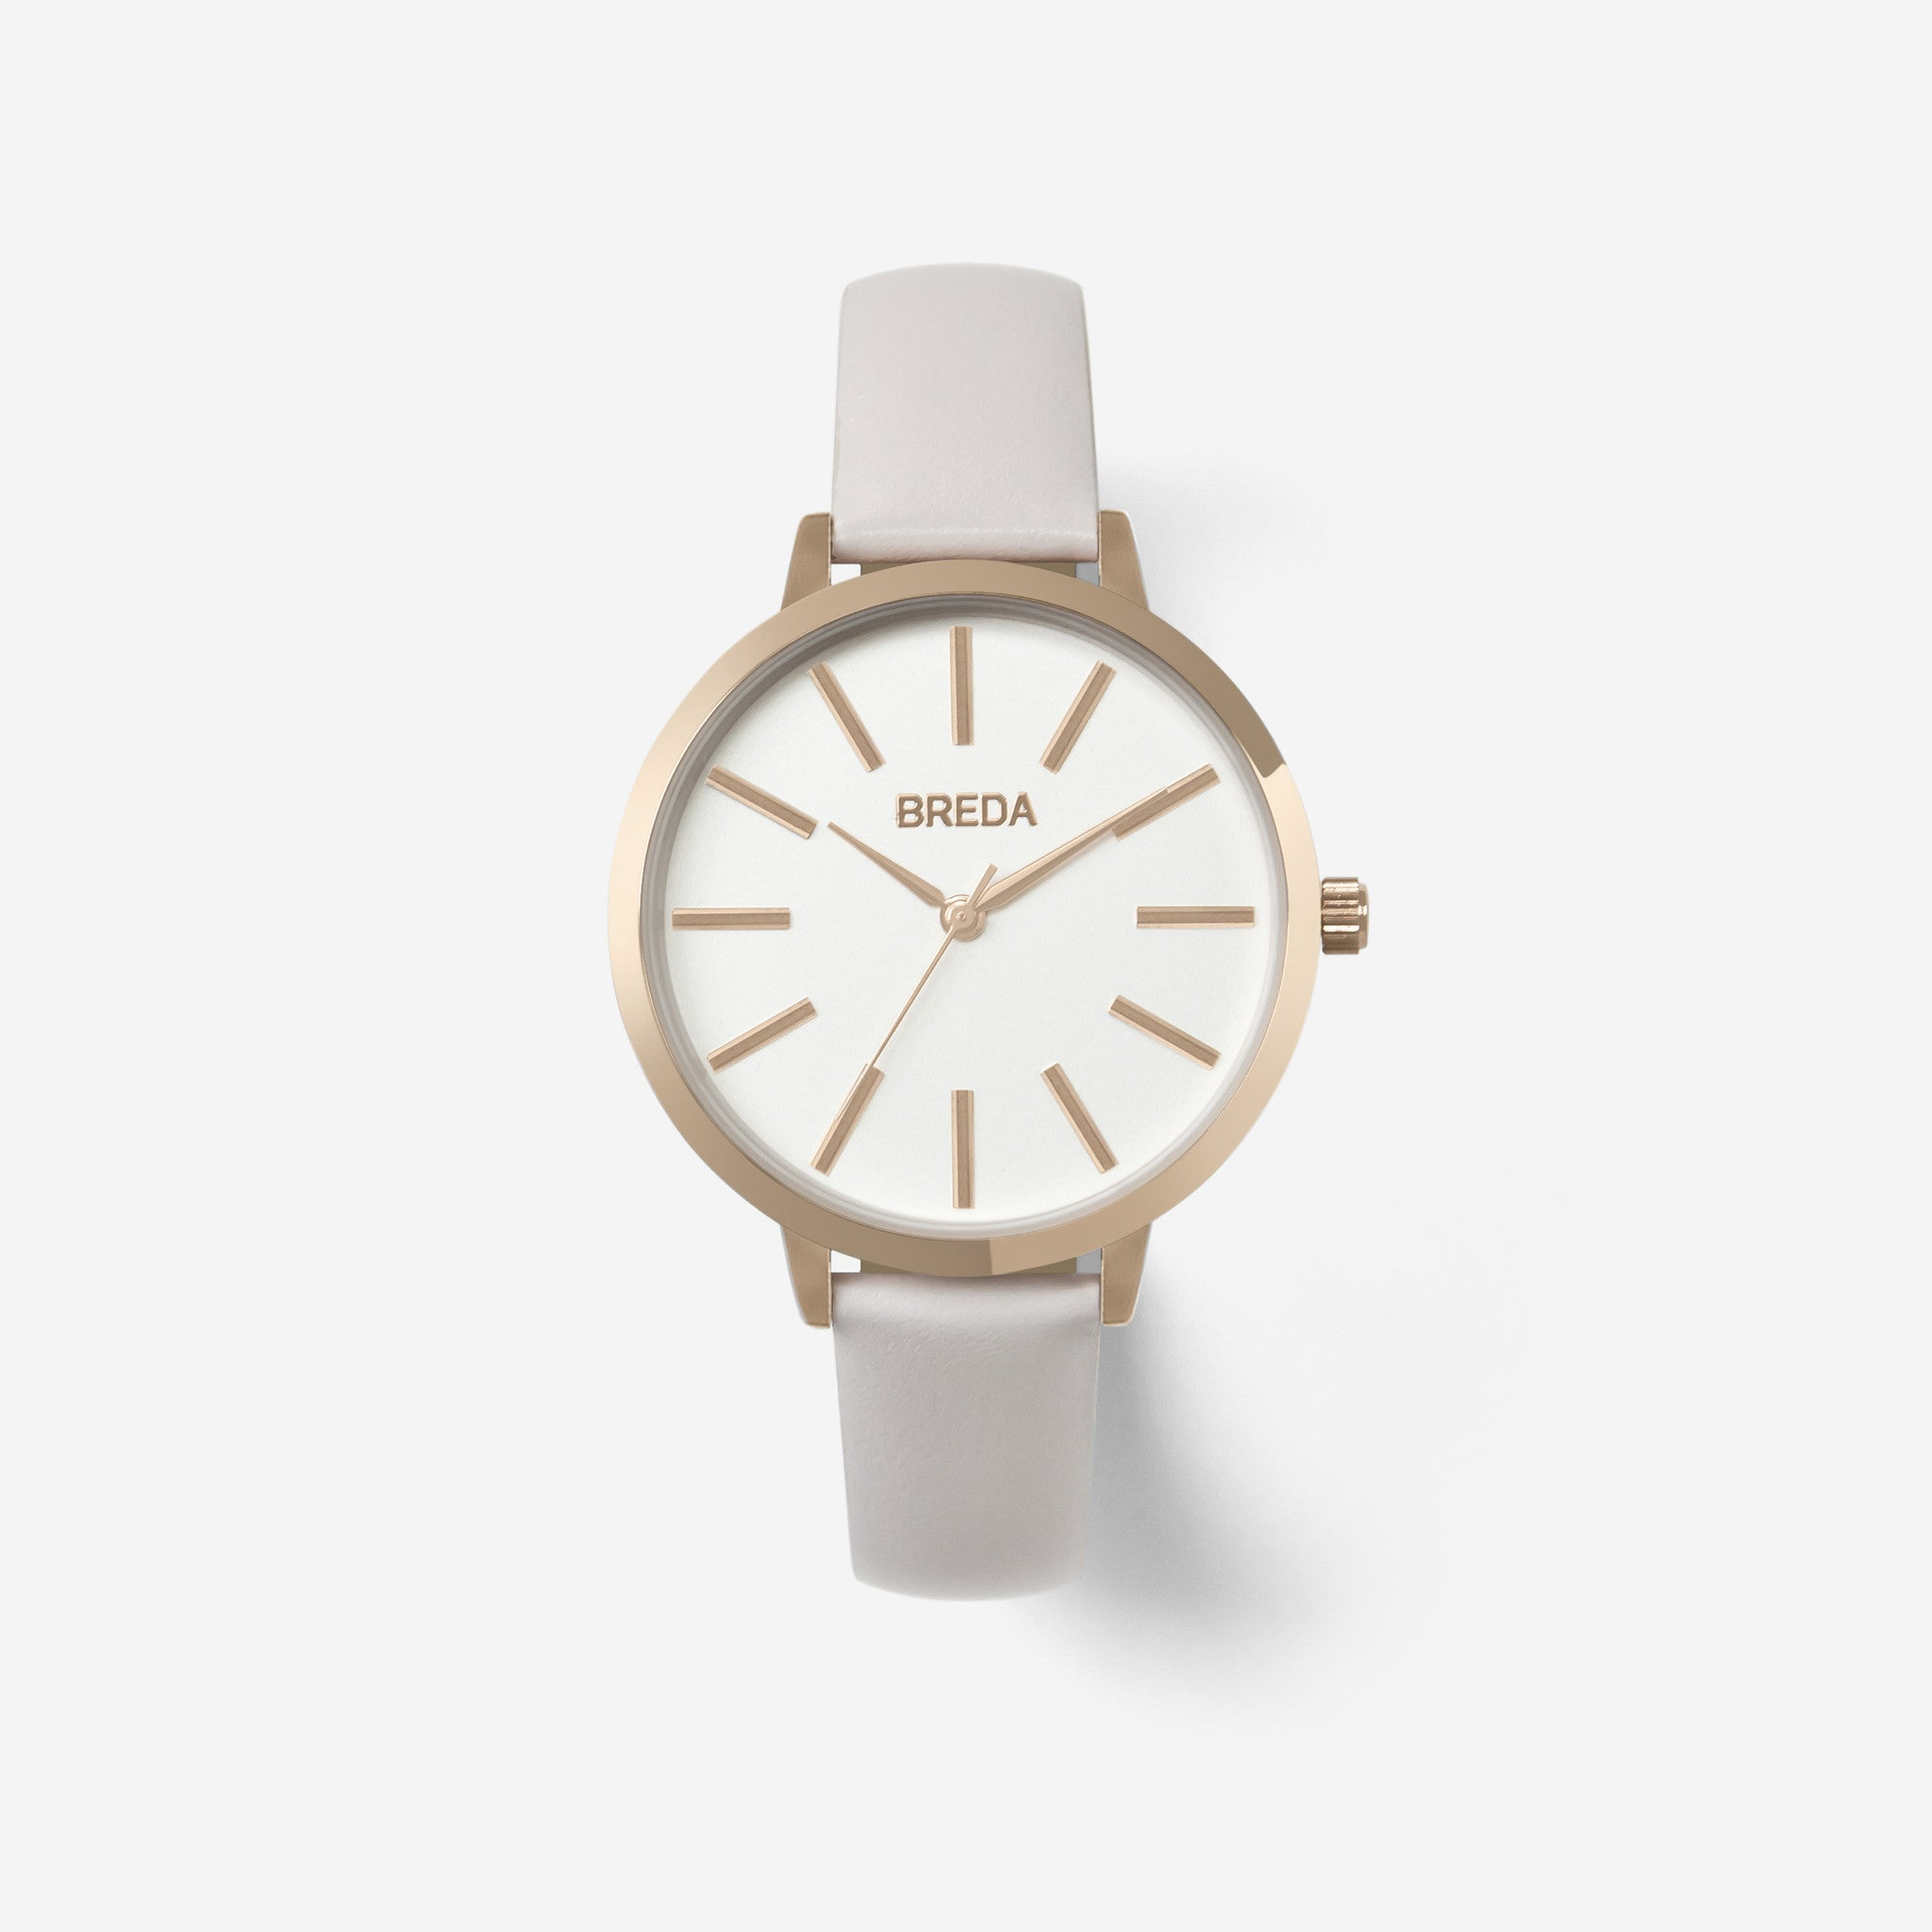 //cdn.shopify.com/s/files/1/0879/6650/products/breda-joule-1722f-rosegold-blush-watch-front_1024x1024.jpg?v=1522790413